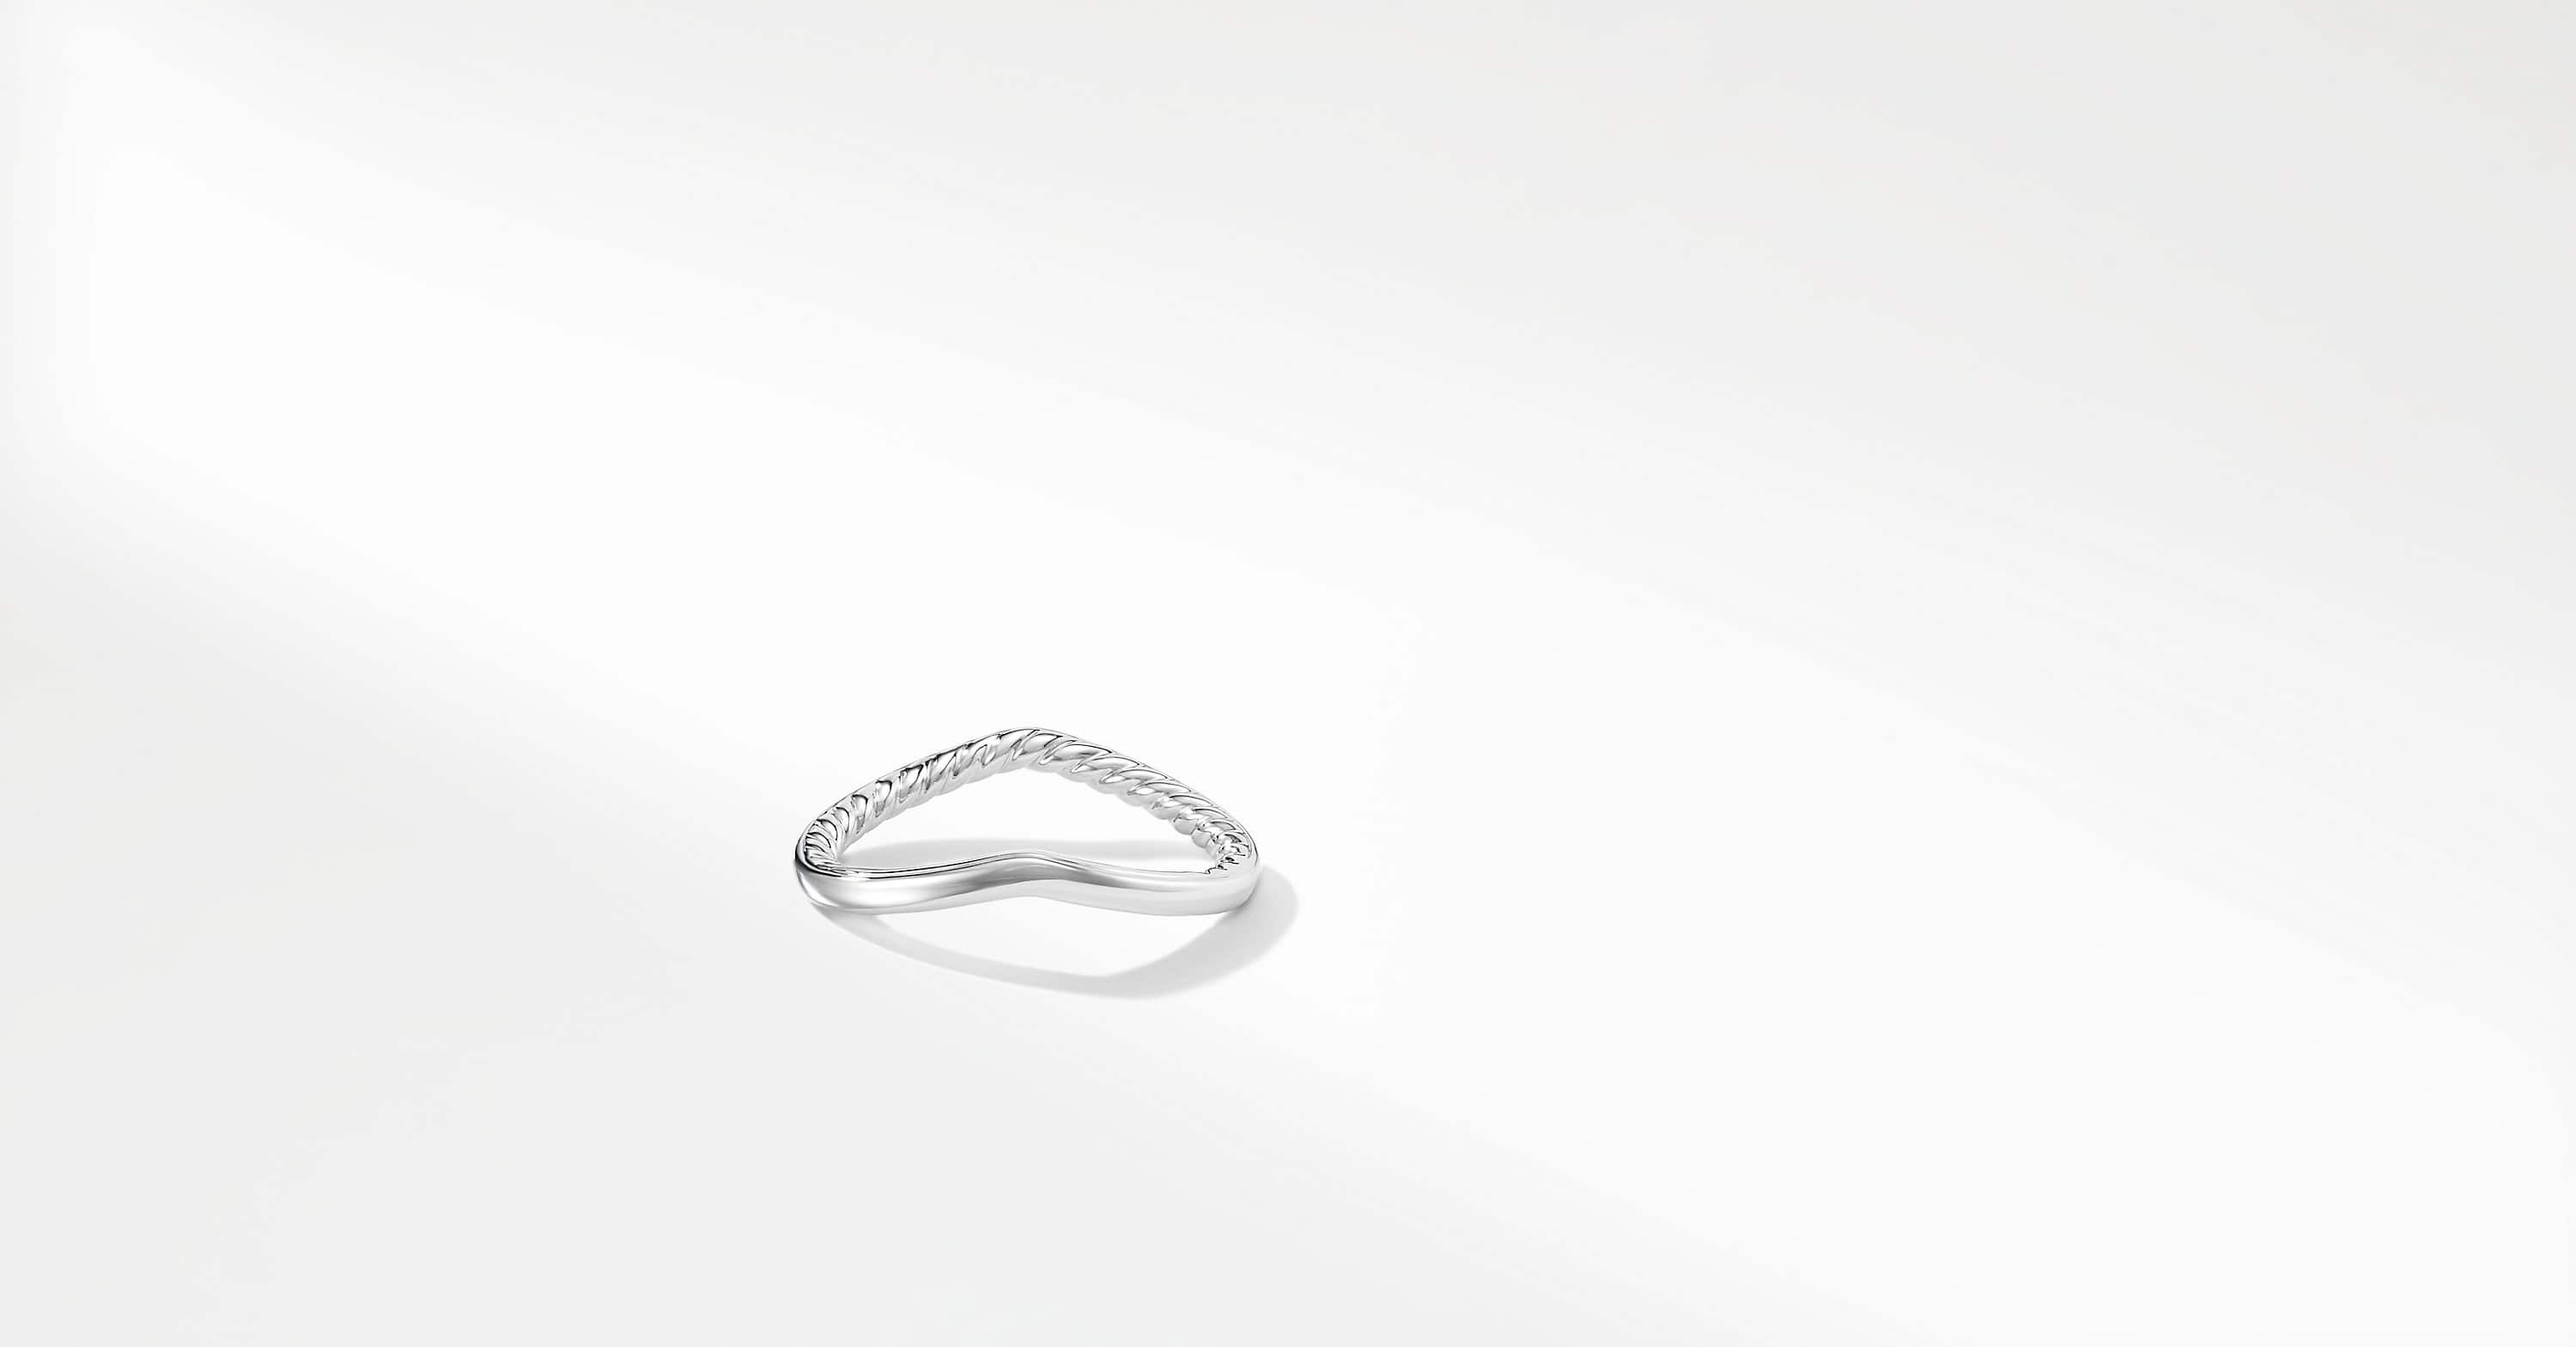 DY Crossover Nesting Wedding Band in Platinum, 1.9mm